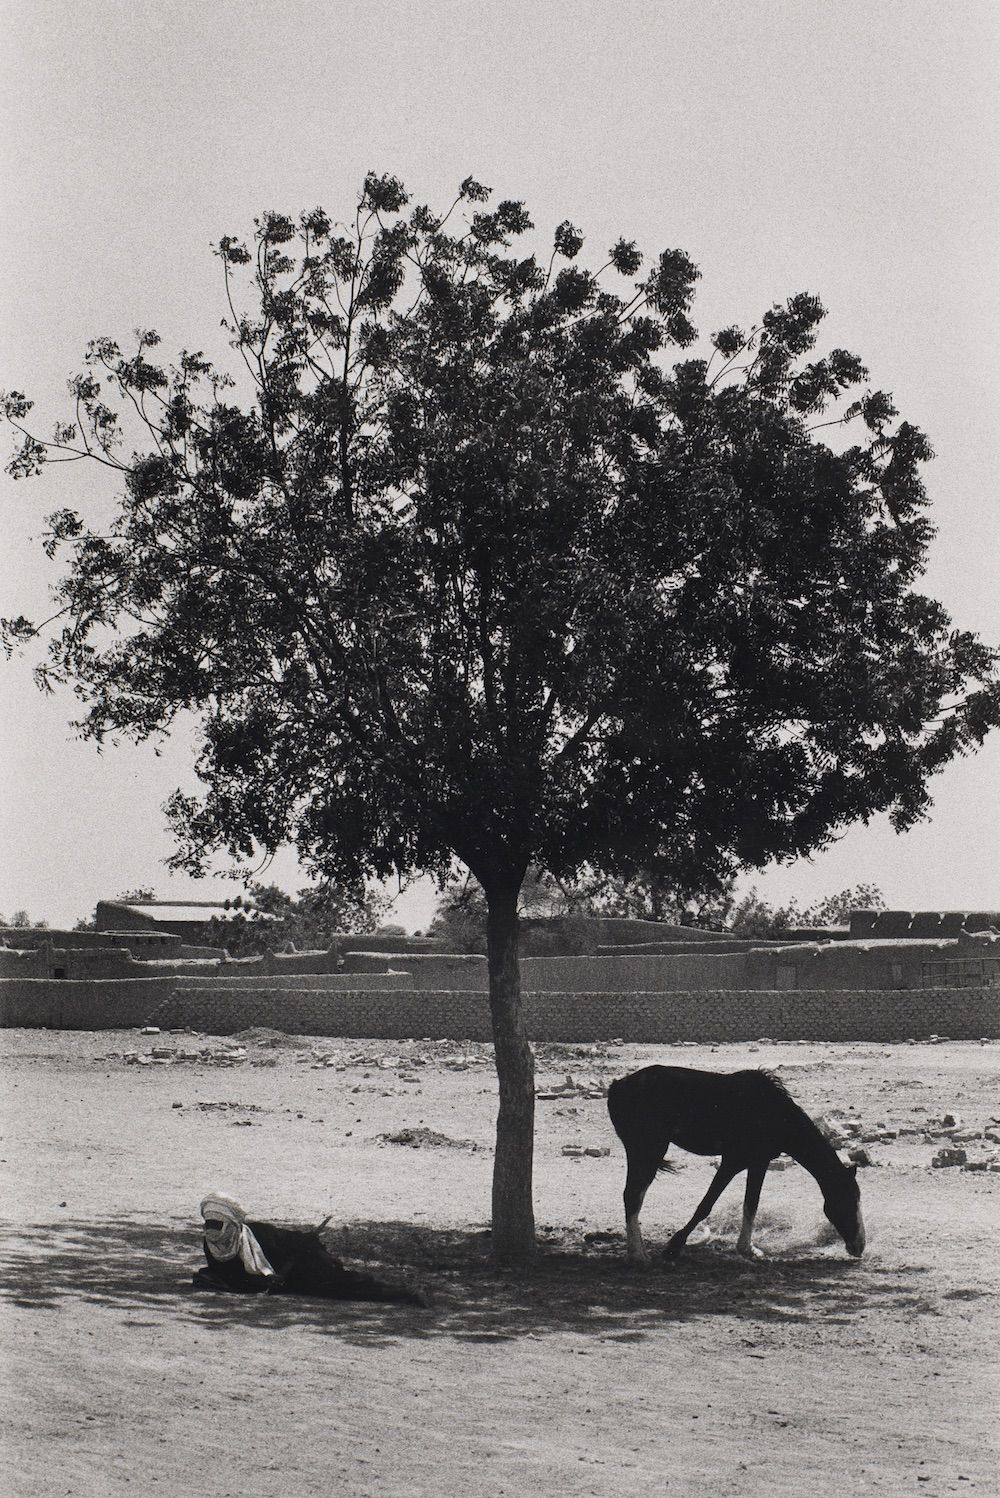 """Bernard Plossu (1945-)  Untitled, from the series """"African Desert"""", 1975  Gelatin silver print  16 x 12 inches (paper), black and white photography"""